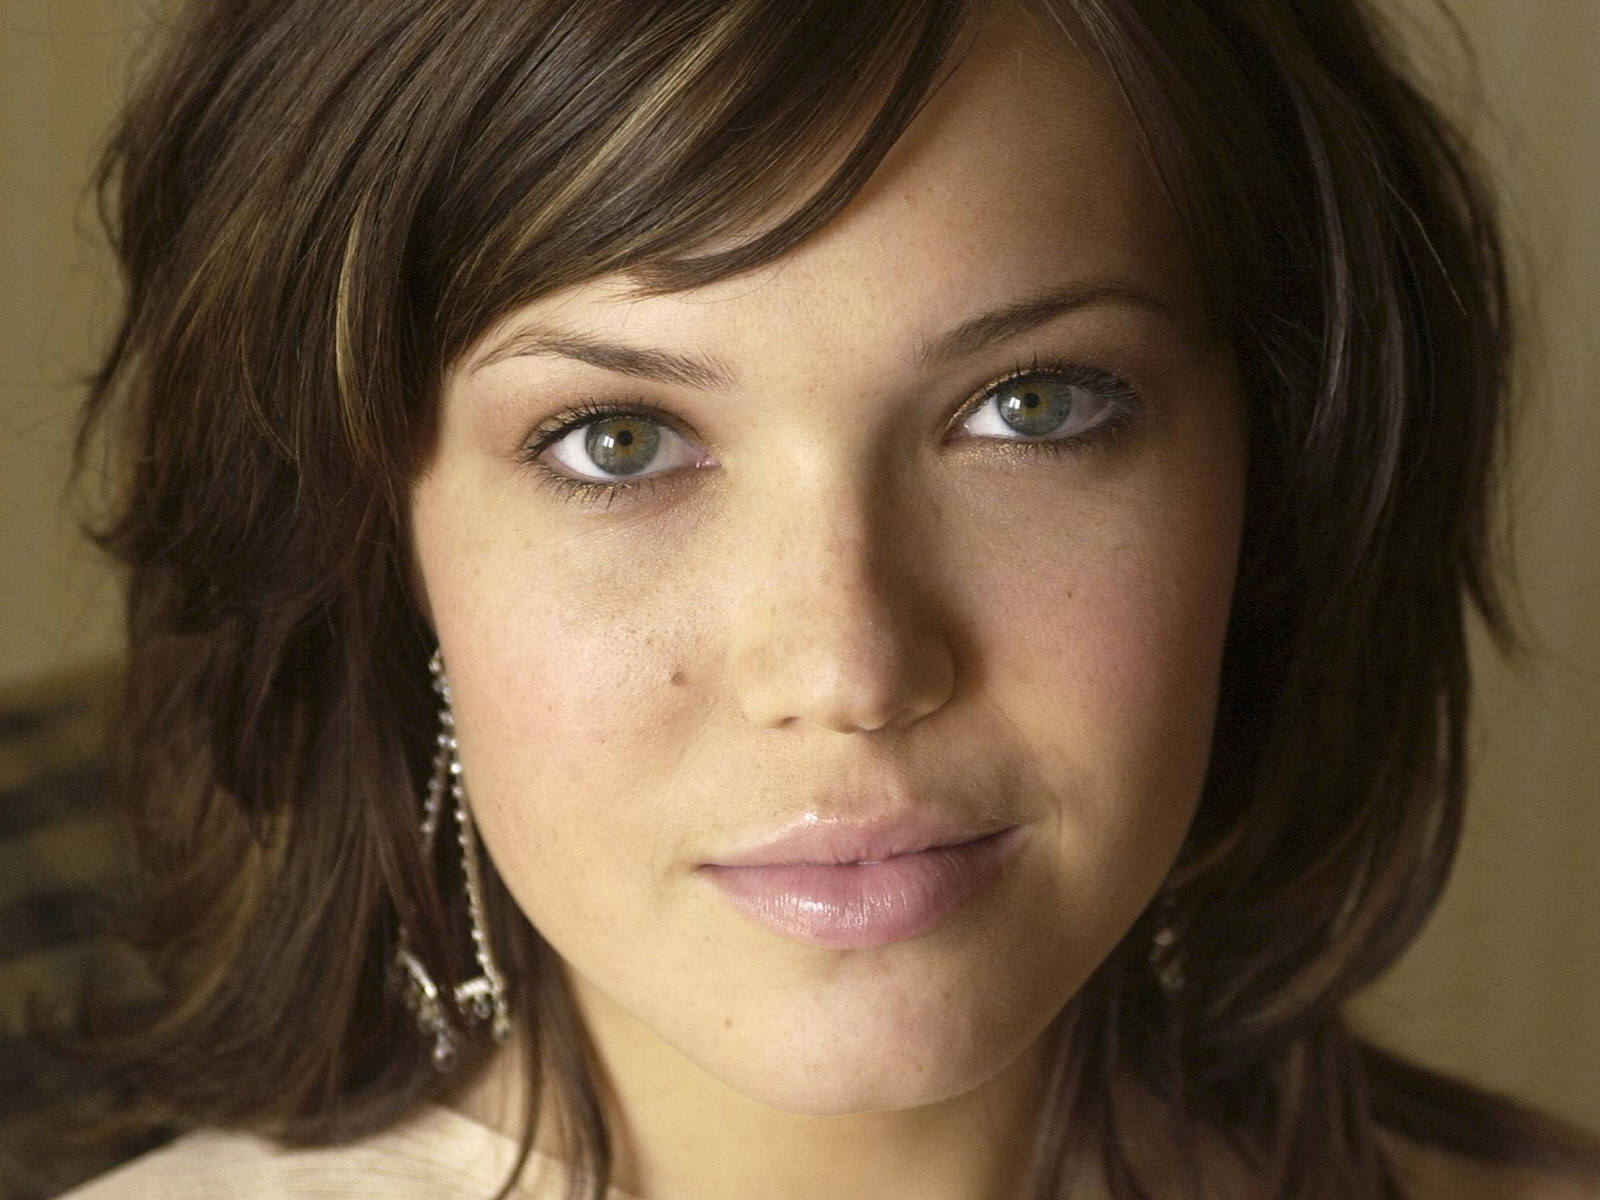 Mandy Moore Widescreen for desktop